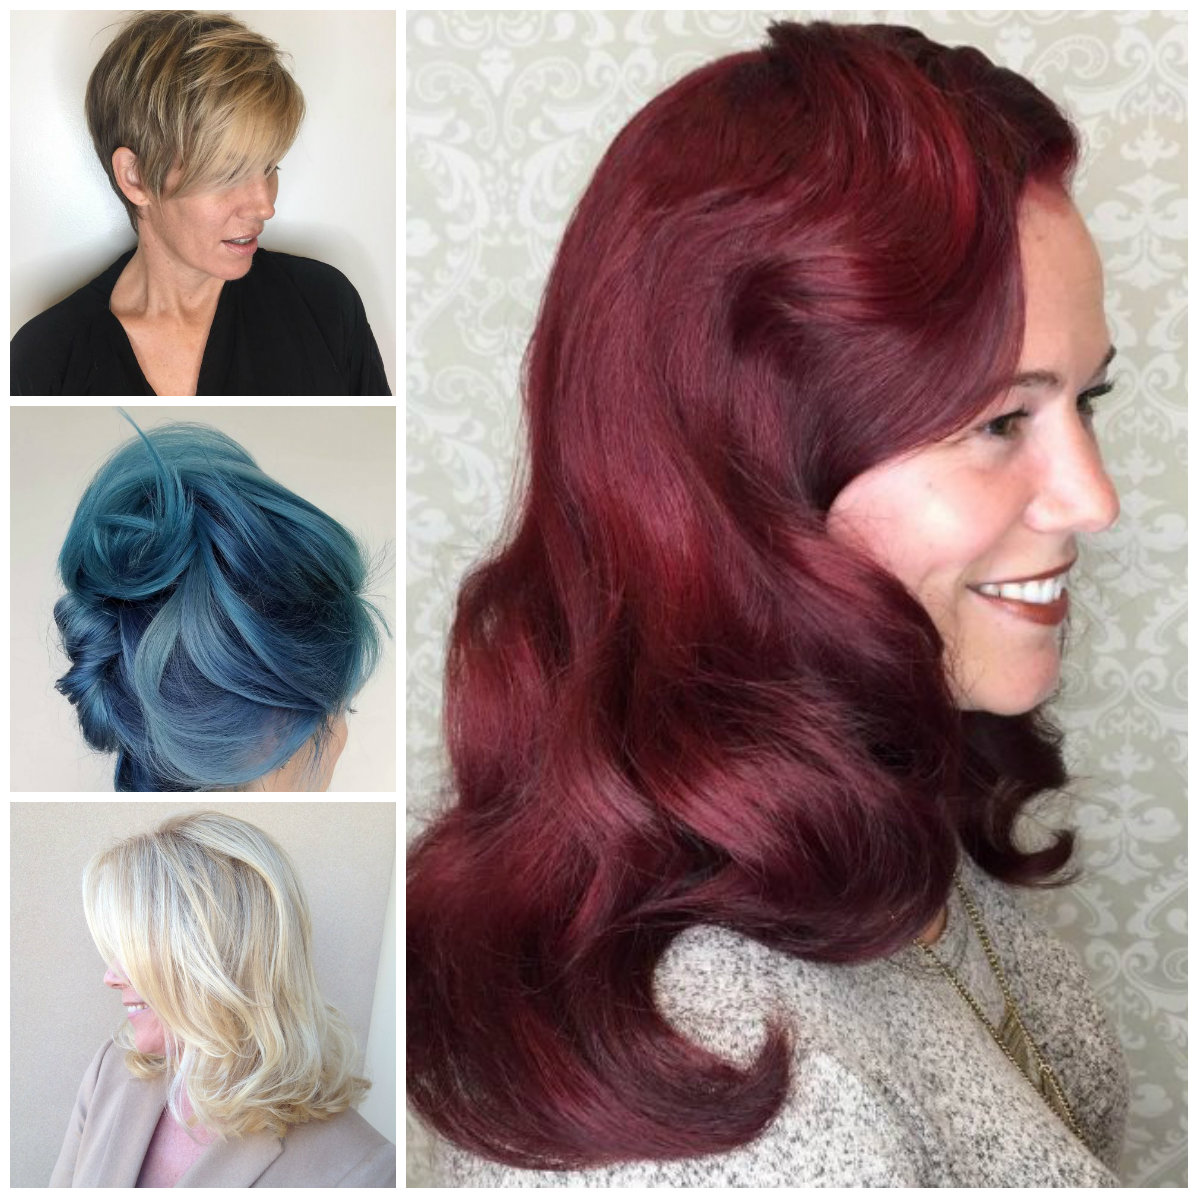 Hairstyle Ideas for Mature Women in 2018